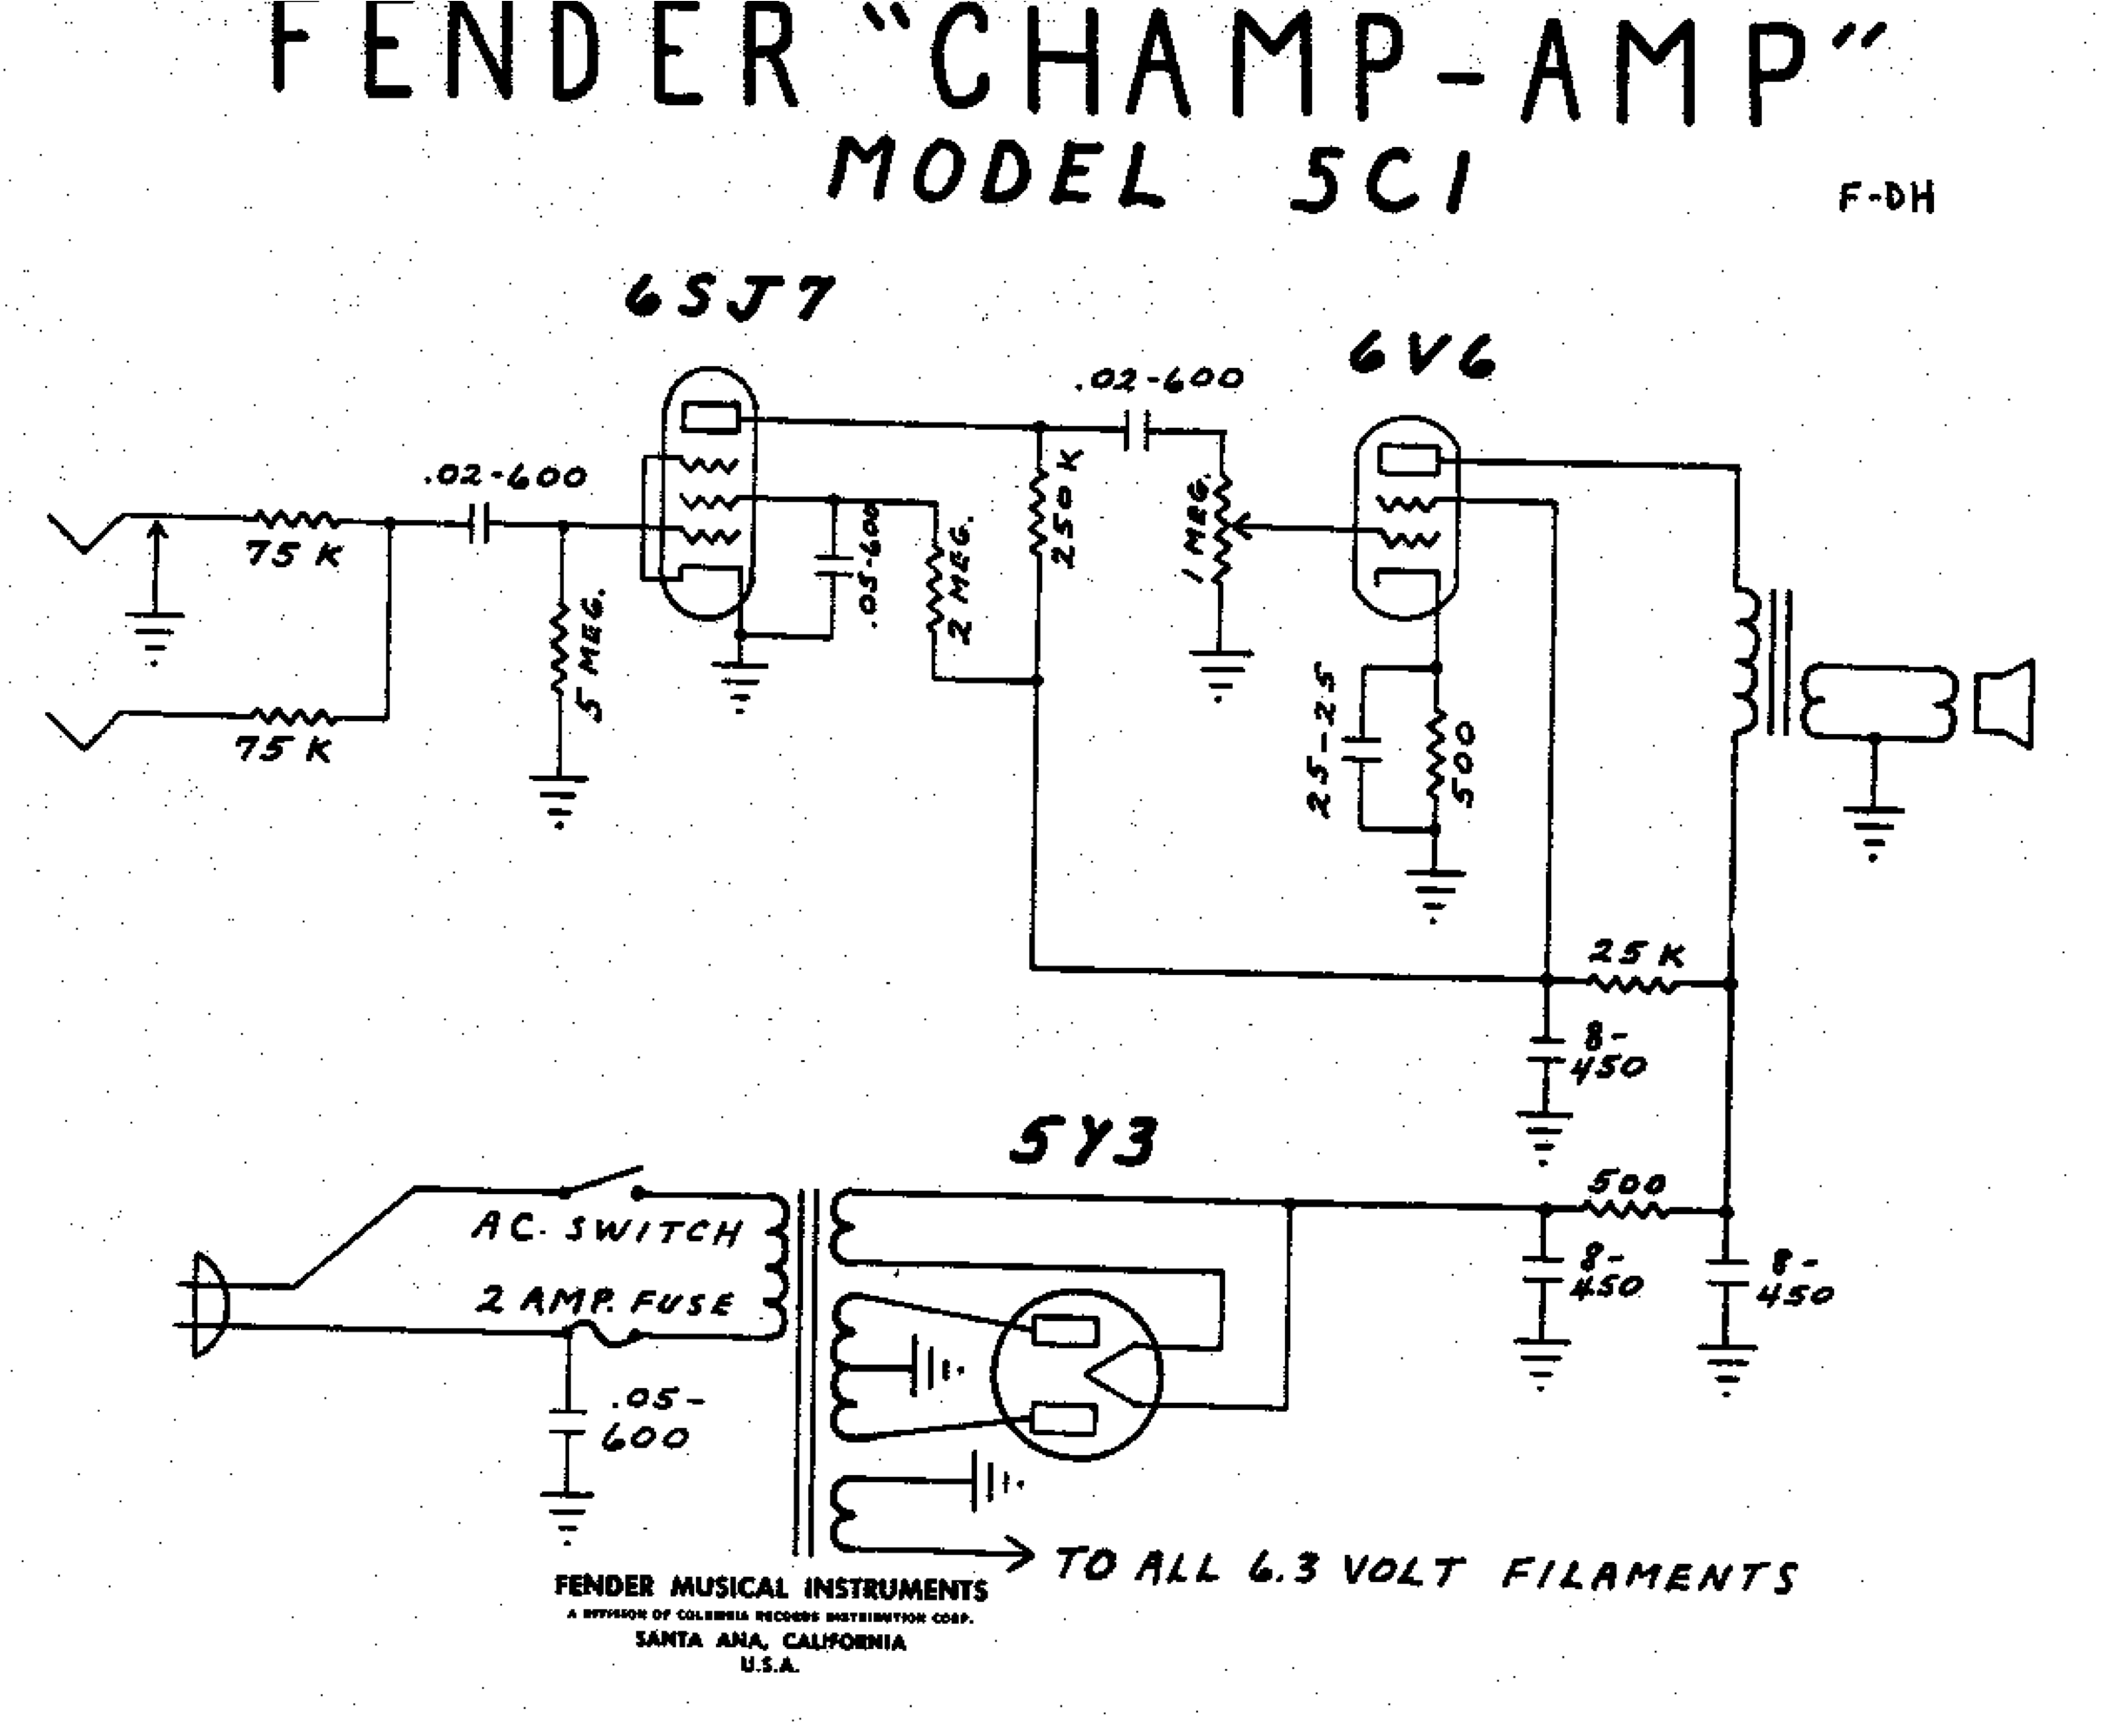 Wiring Diagram Fender Champ Not Lossing Deluxe Amp 5c1 My Vintage Amps Rh Myfenderchamp Com Schematic Parts